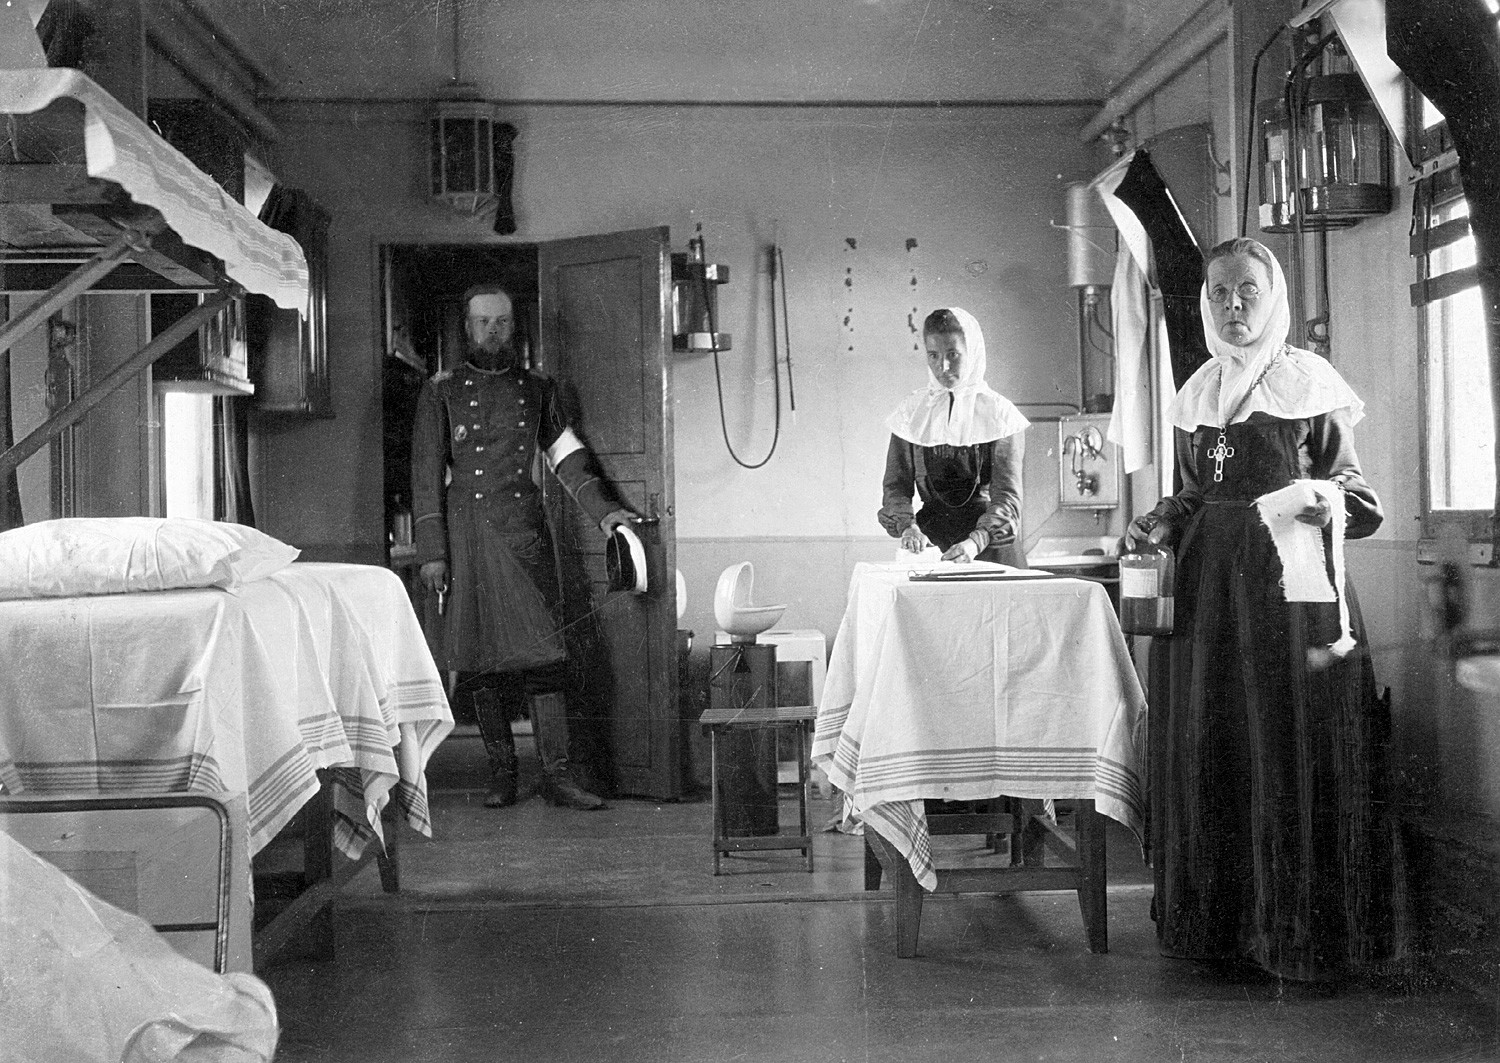 Paramedics and female paramedics in a hospital train of the Russian Red Cross.